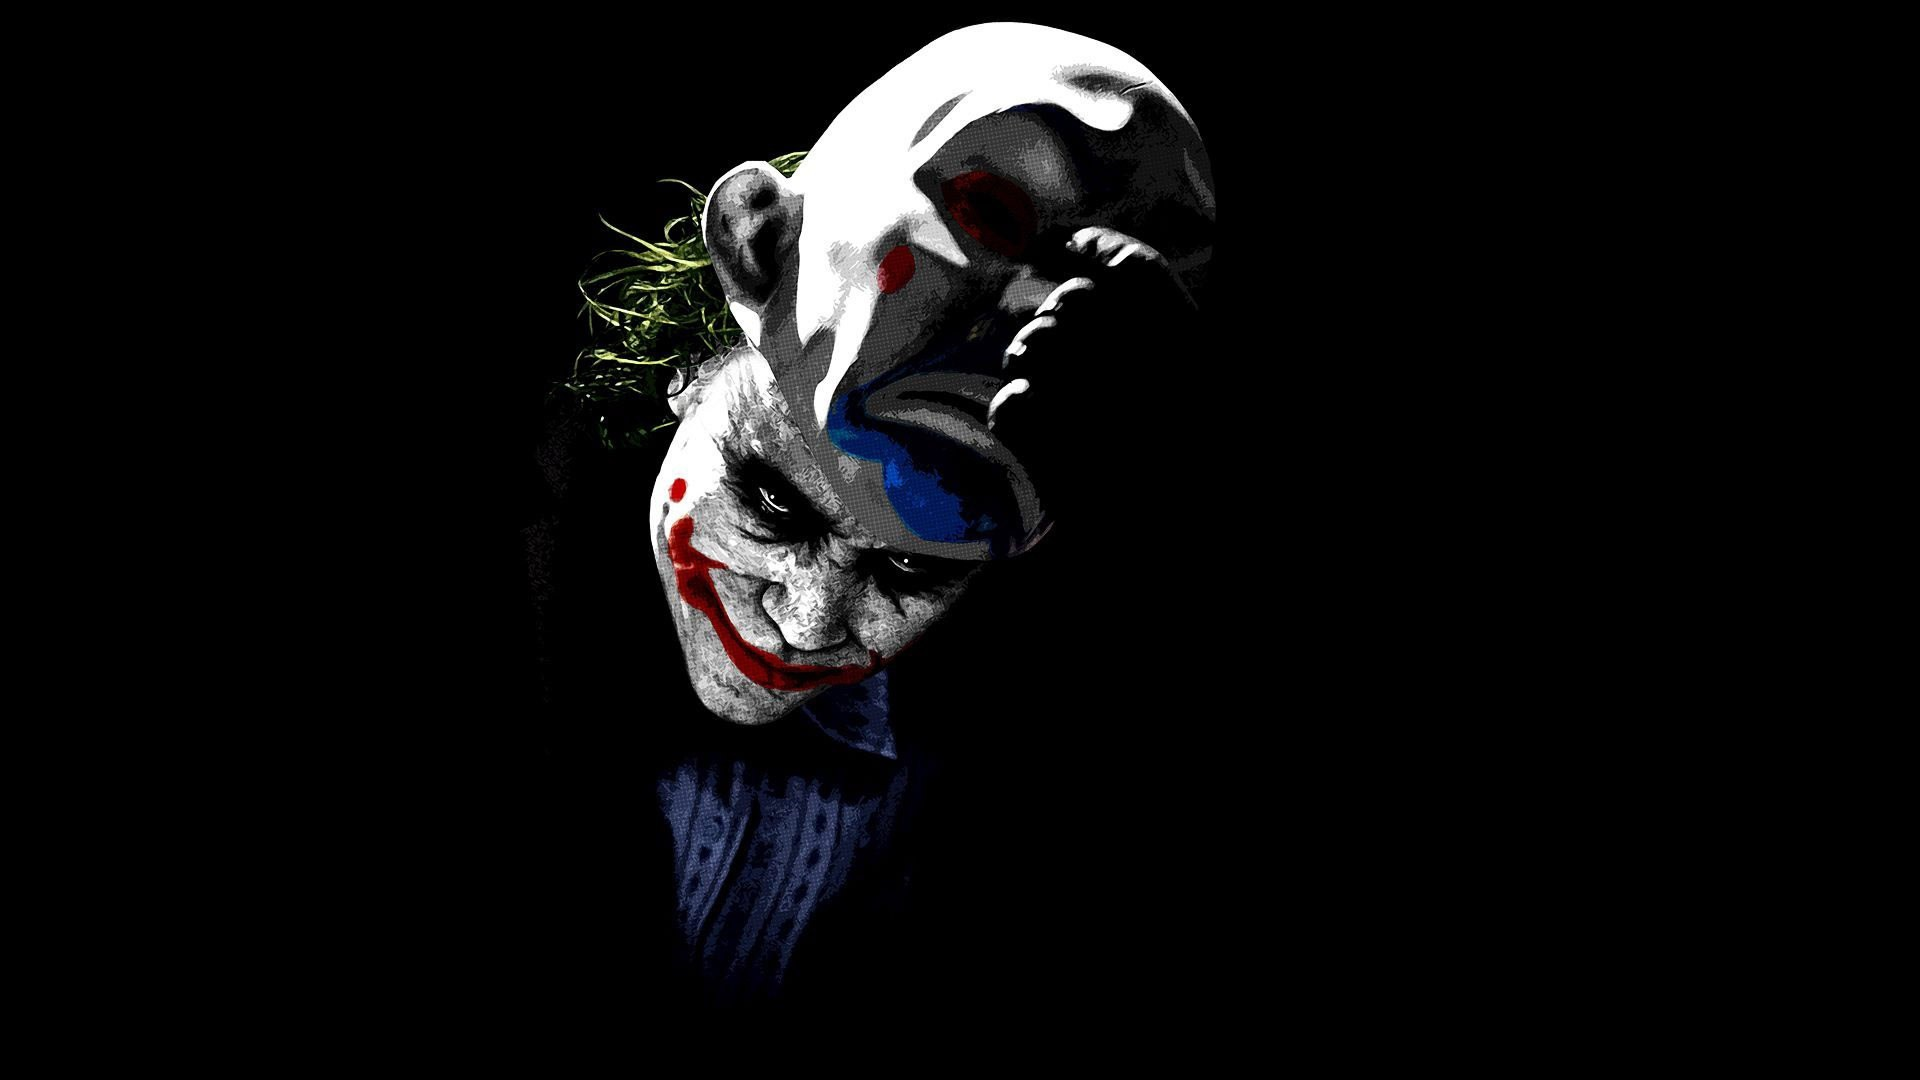 … Awesome Joker Quotes Dark Knight Wallpaper of awesome full screen HD  wallpapers to download for free